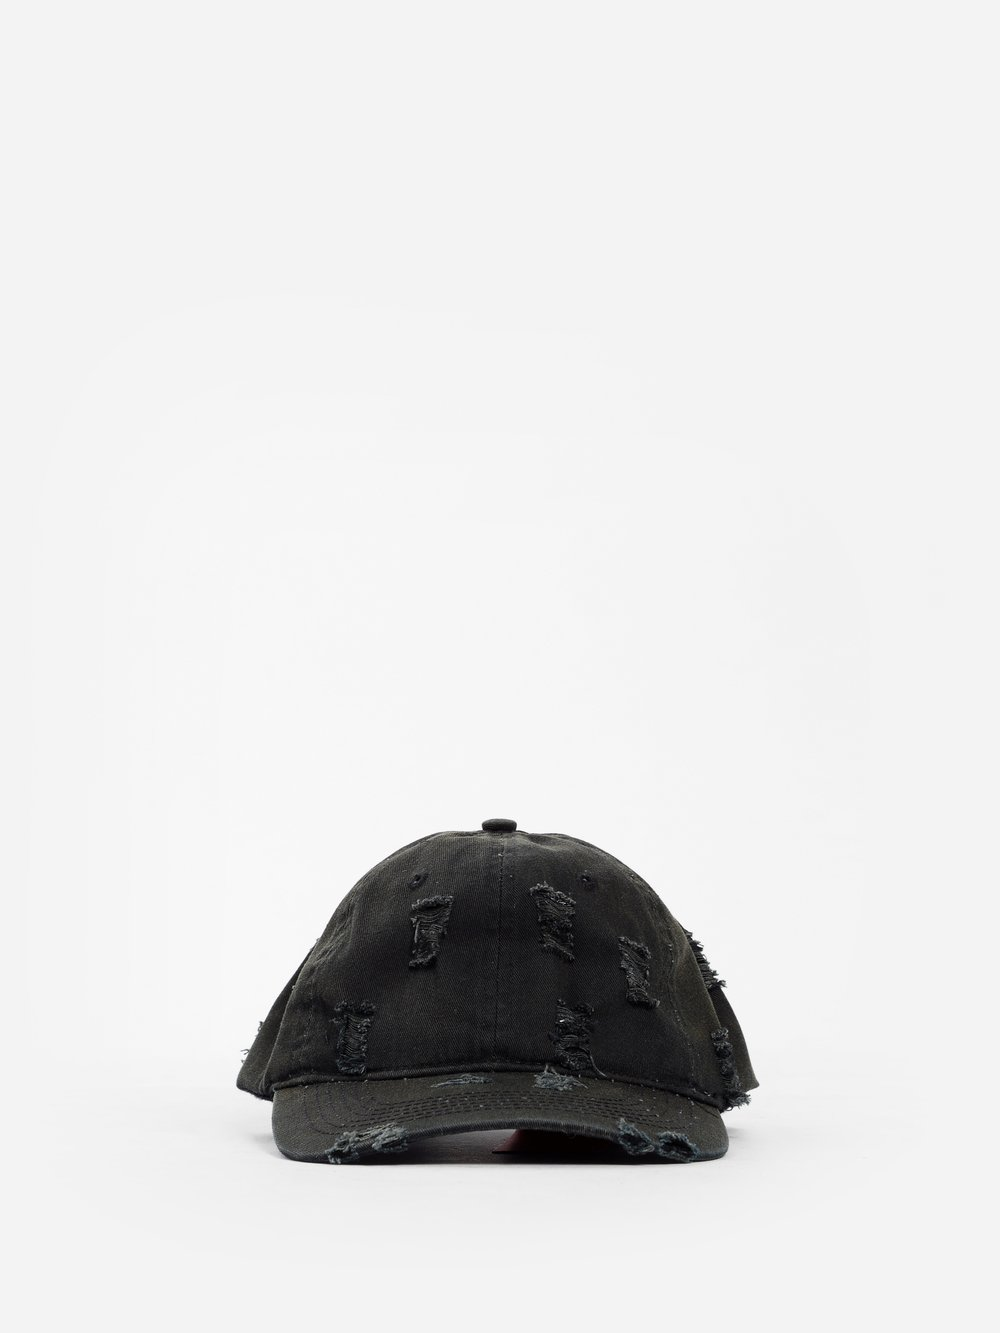 Image of 032C Hats